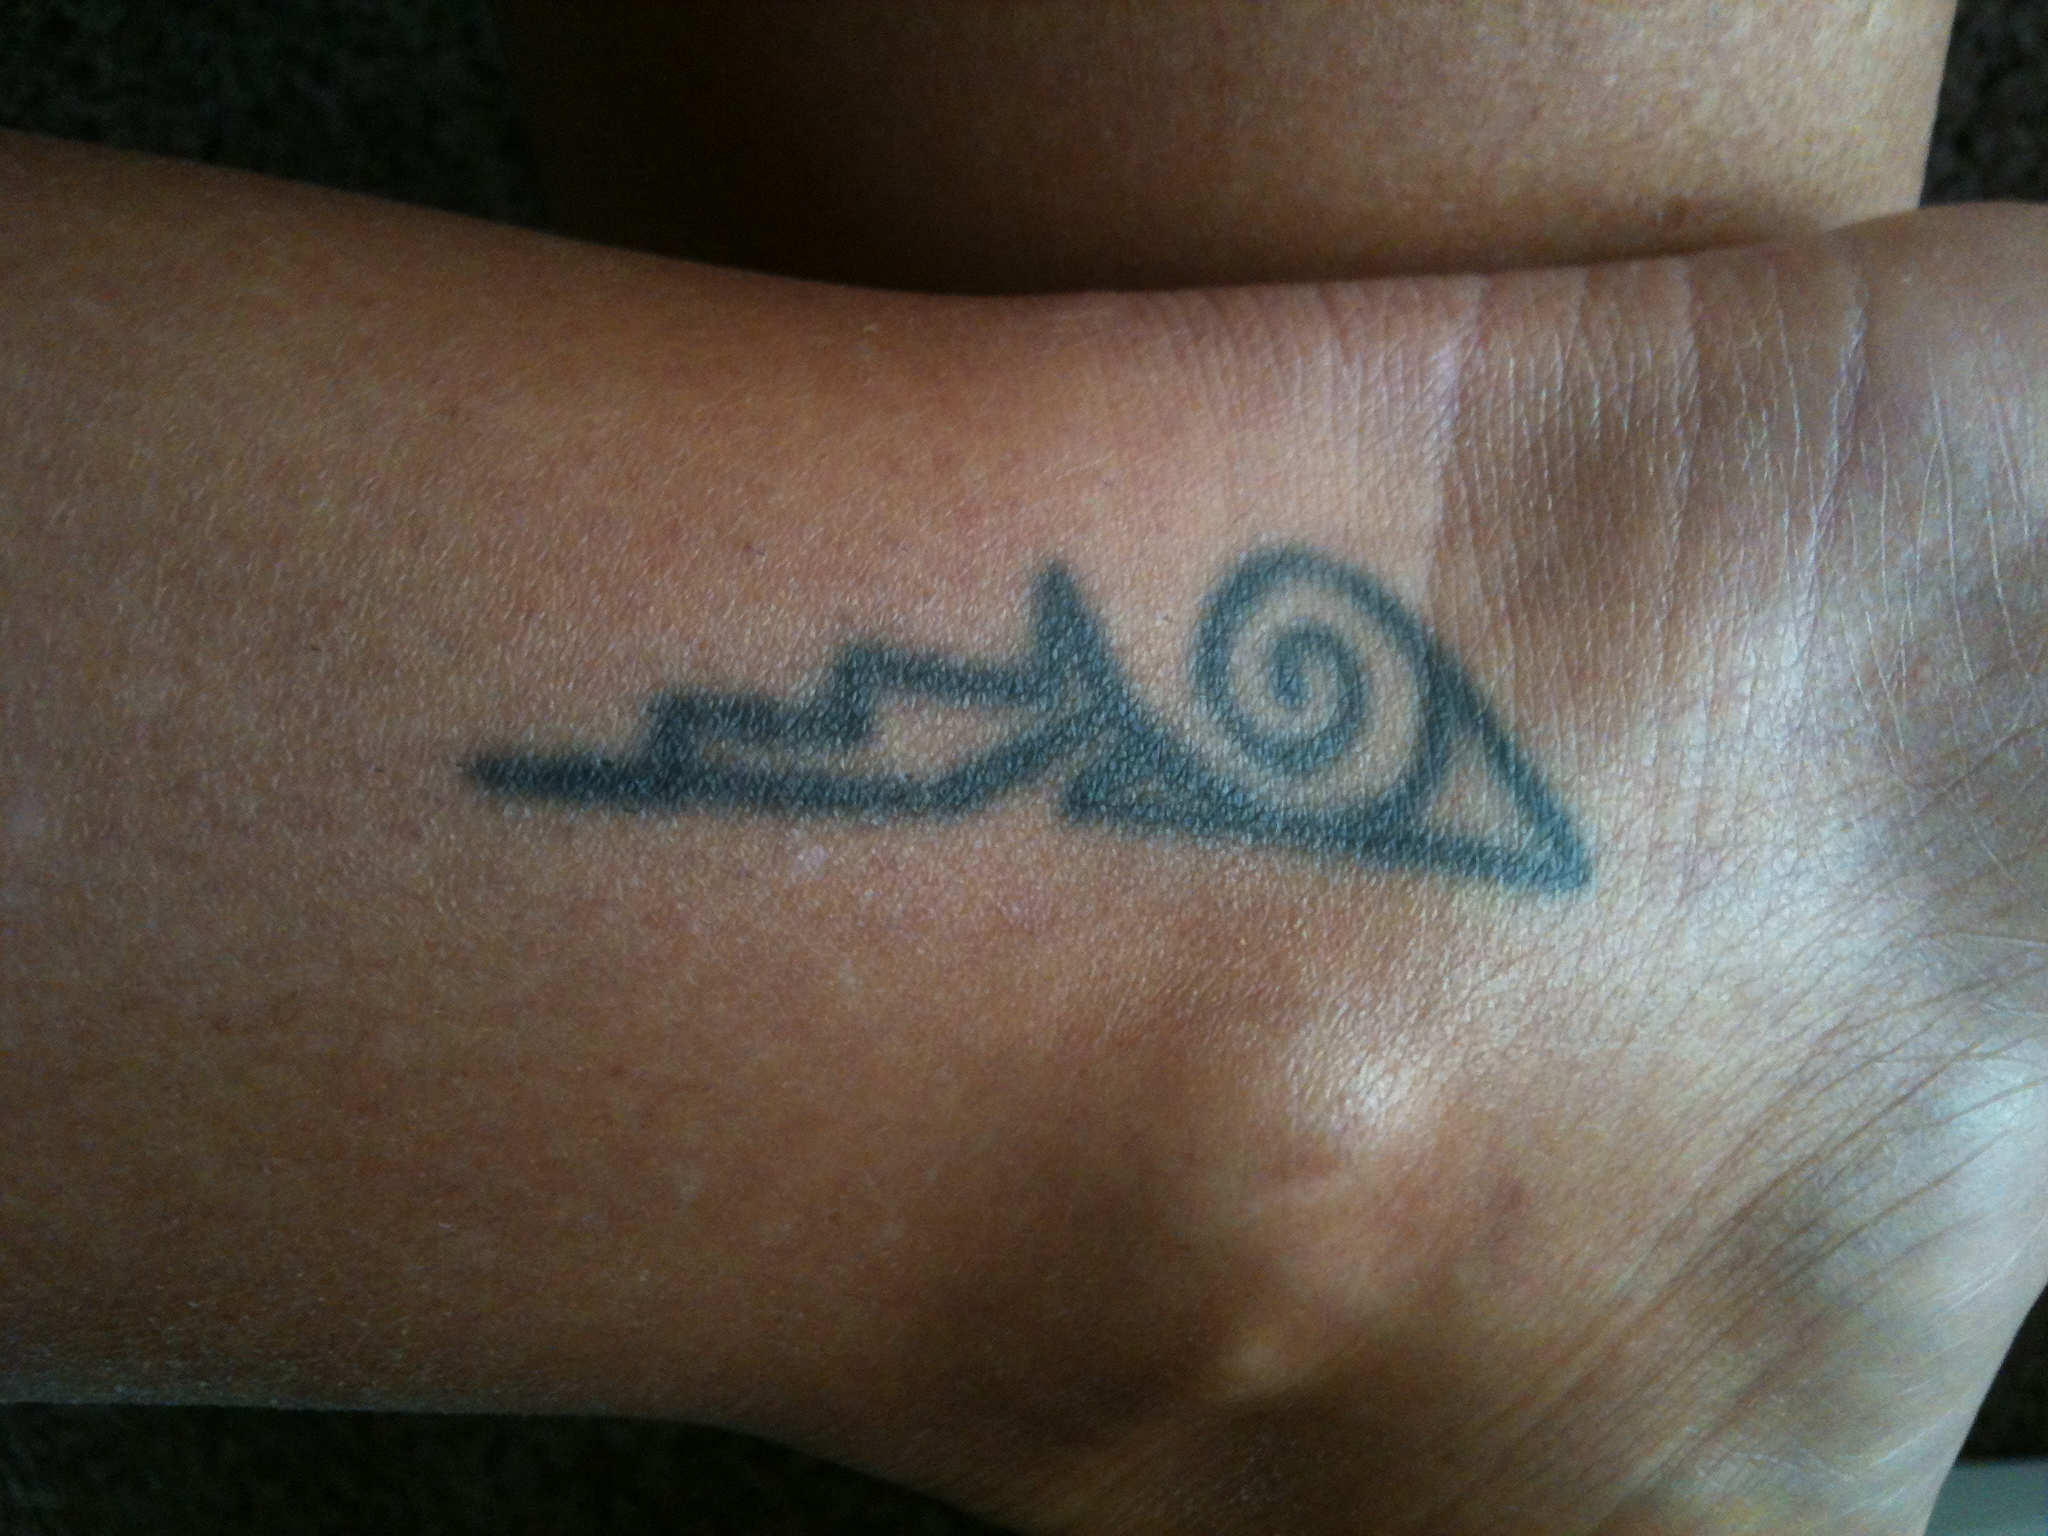 The swirl represents water or waves, the right side is a pueblo/earth ...